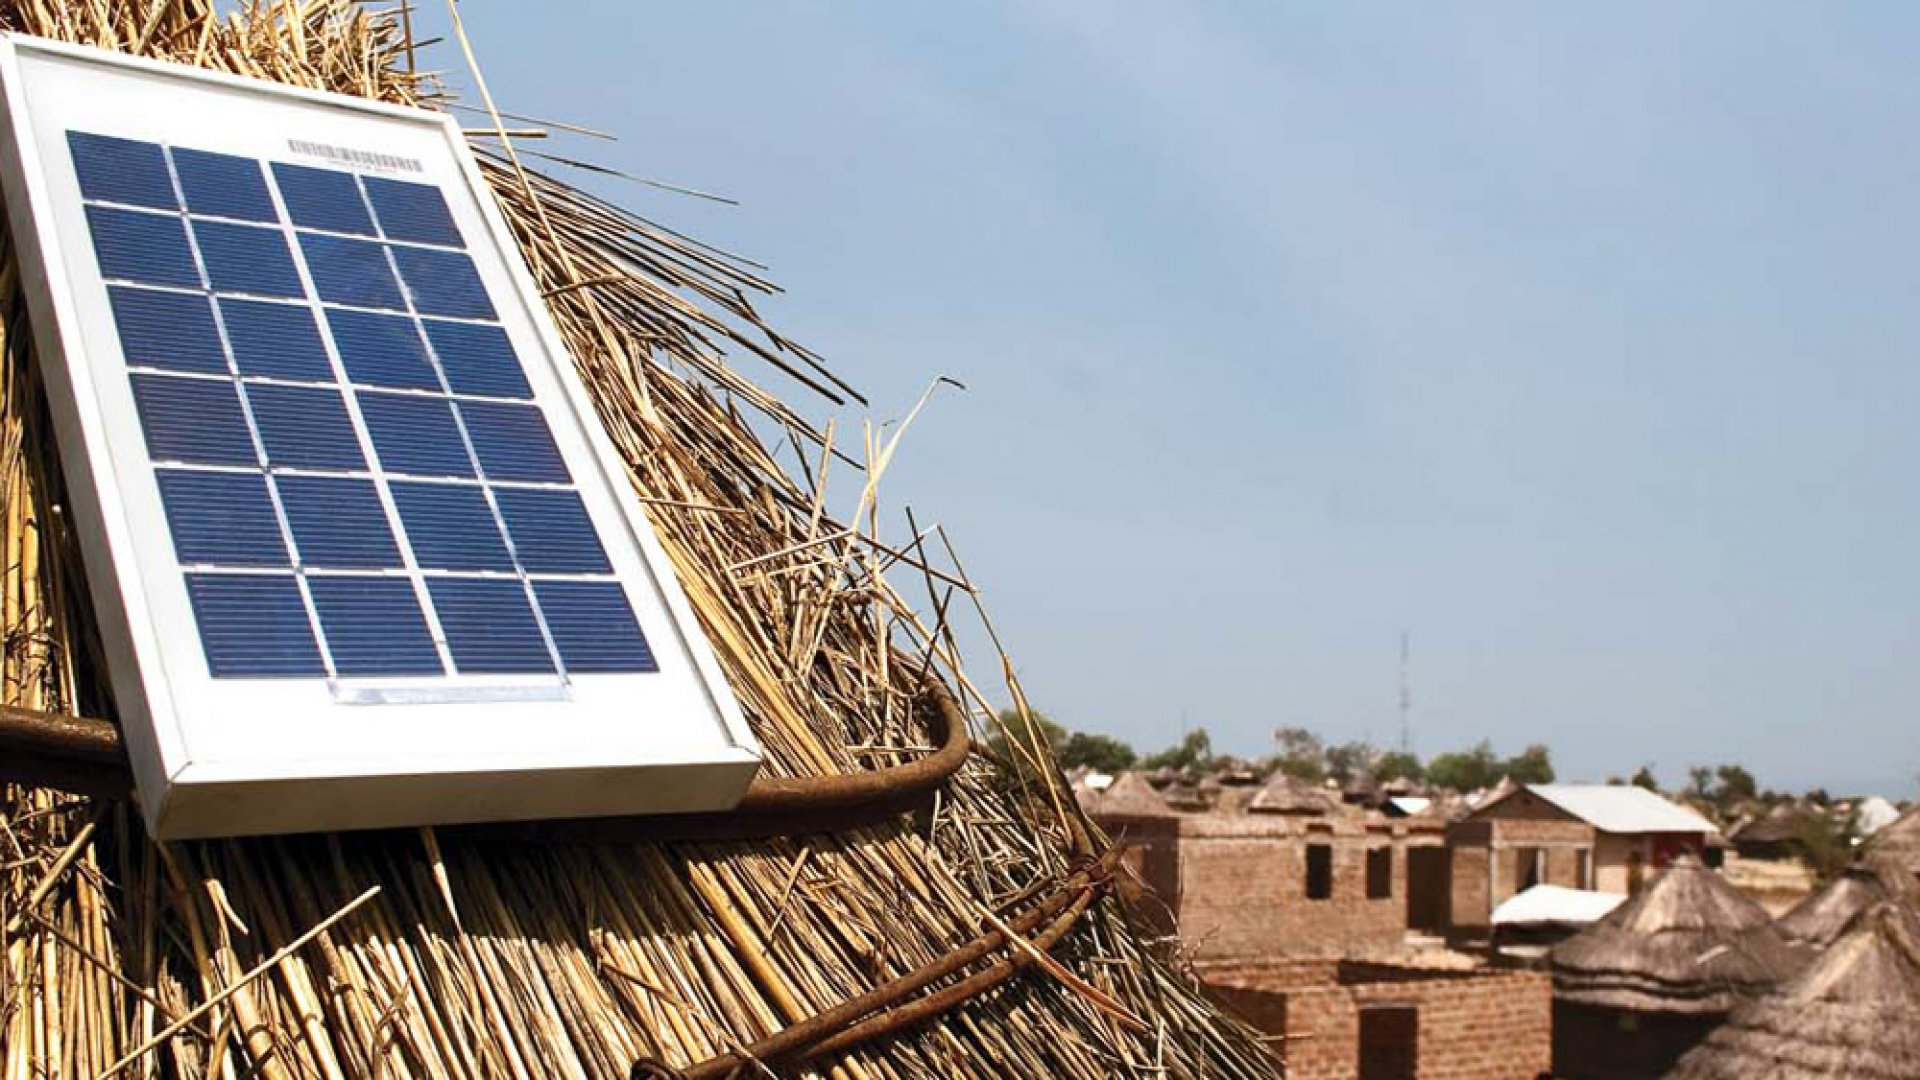 <b>LET THERE BE LIGHT</b> Azuri Technologies's solar energy system, shown here in a village in South Sudan, is a safe and affordable alternative to kerosene.